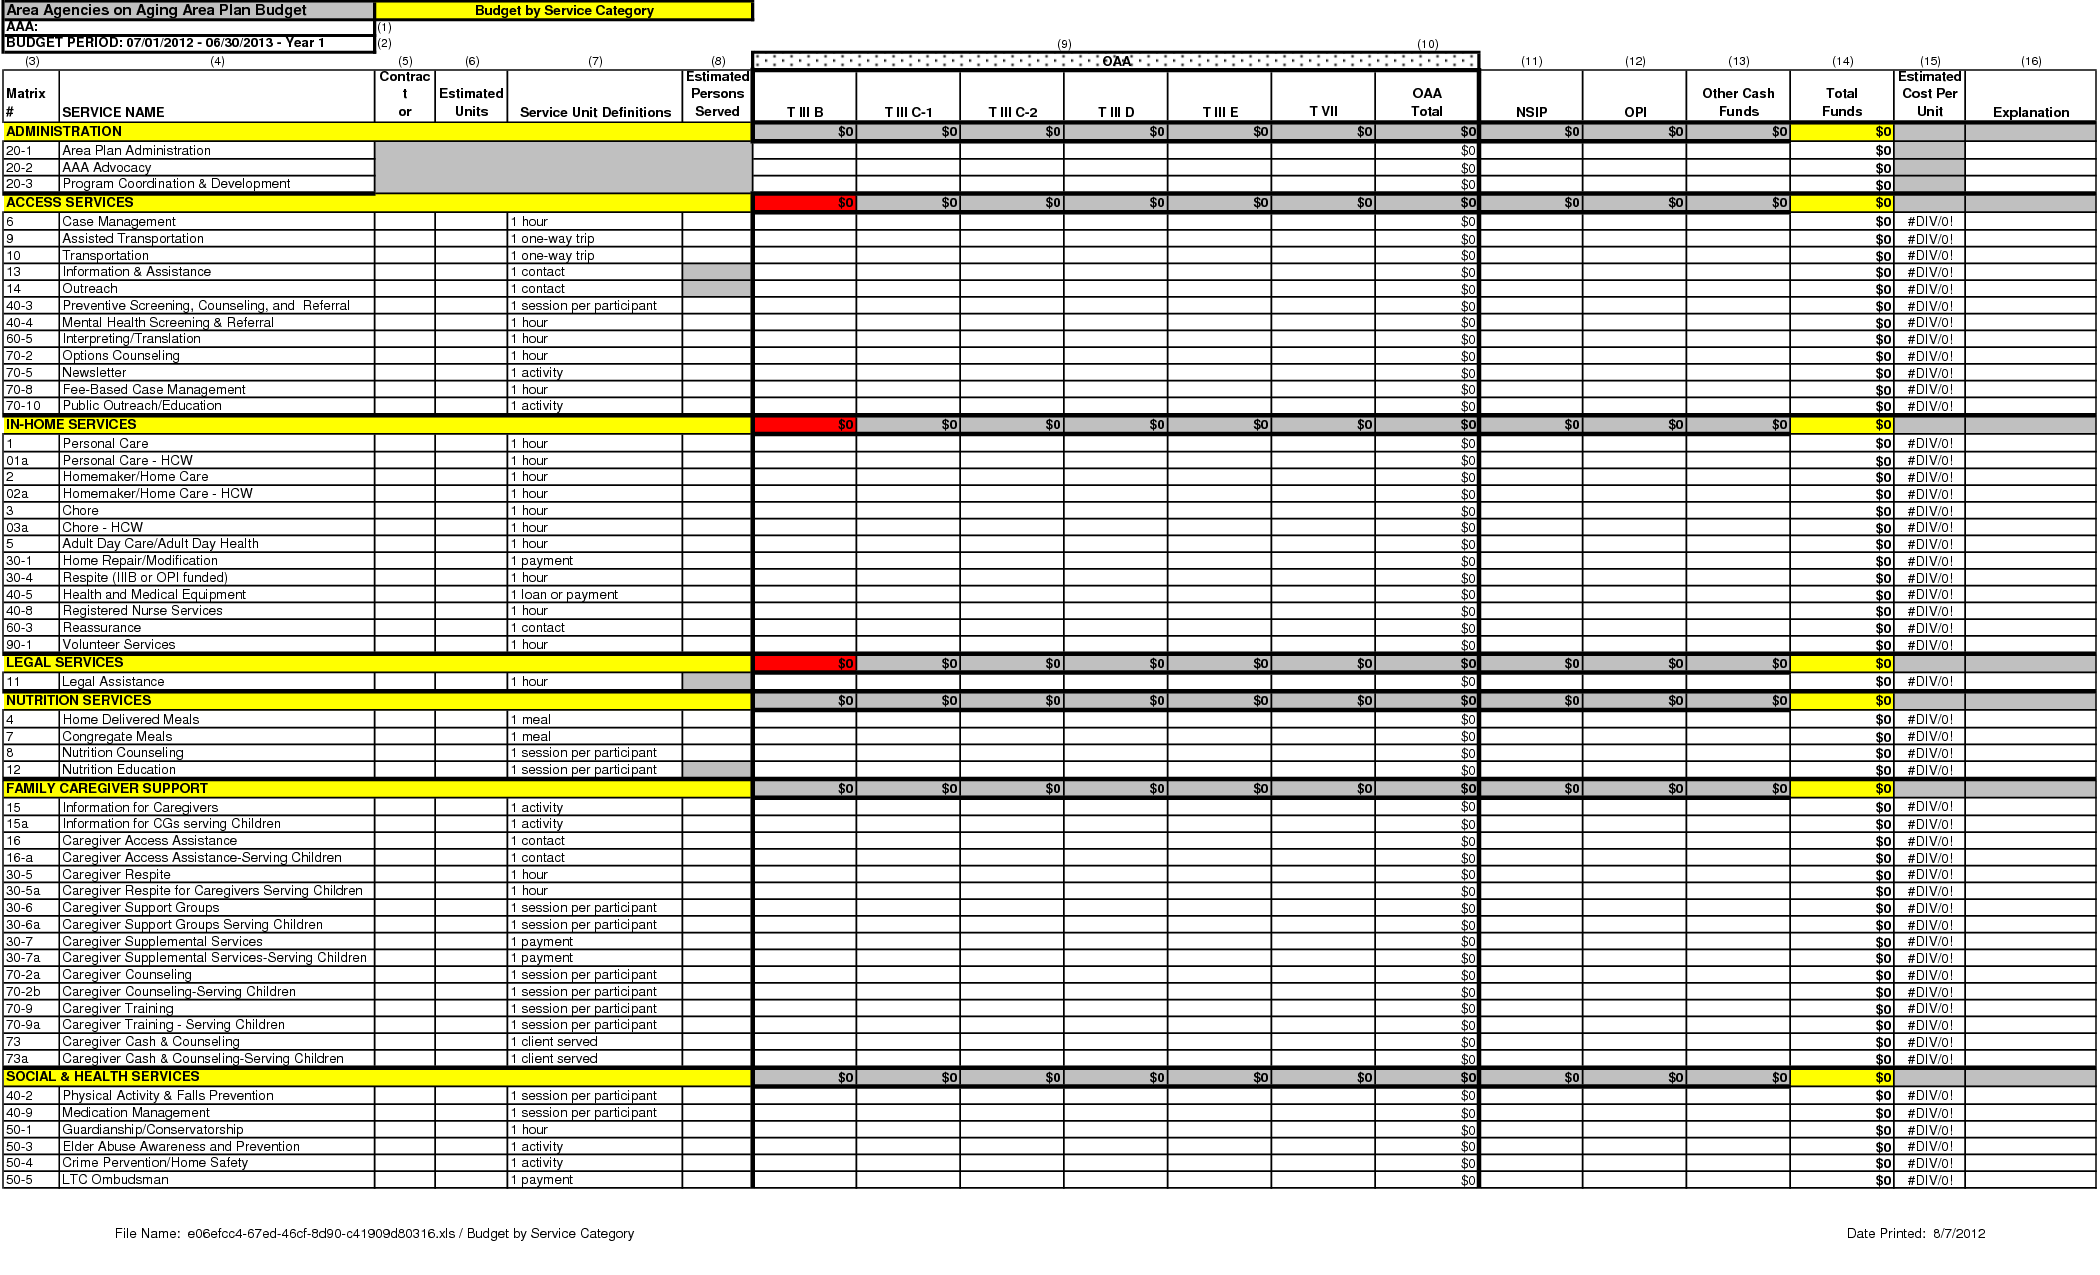 nursing-staffing-plan-template_99438